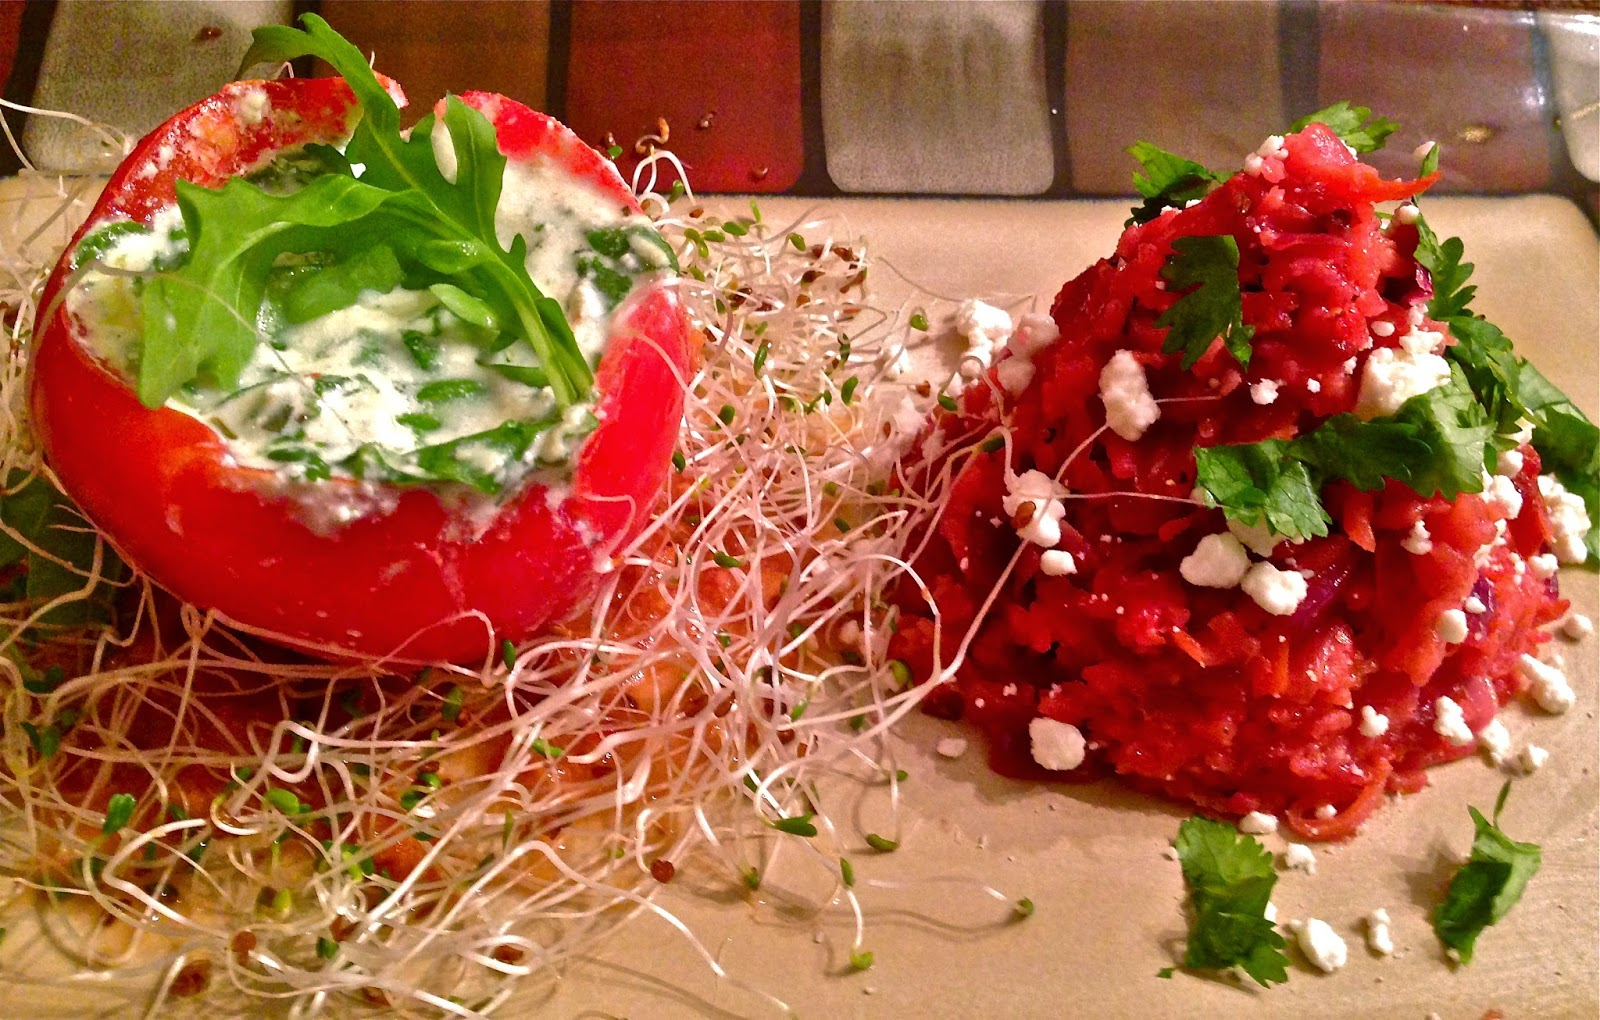 Spinach & Ricotta Stuffed Tomato with Beet & Cabbage Risotto